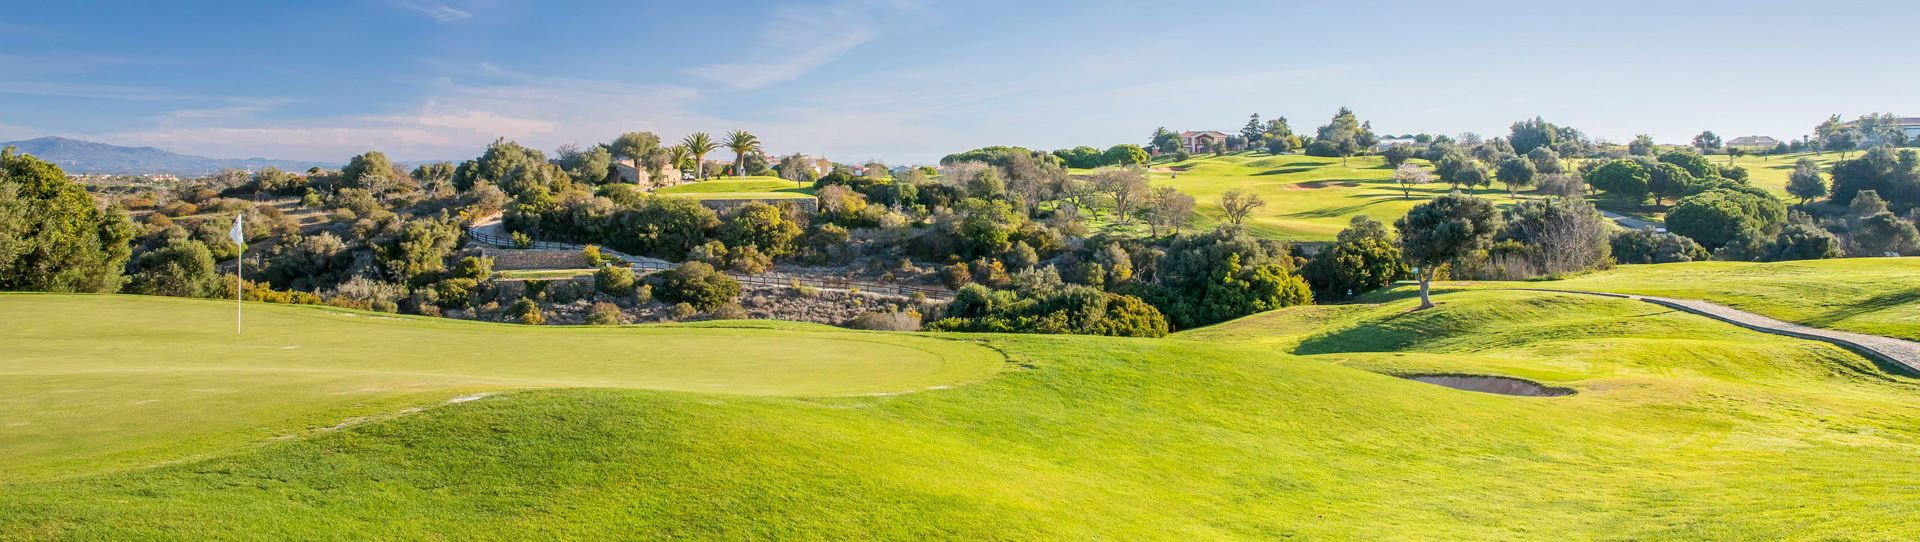 Boavista Golf Course - Photo 1